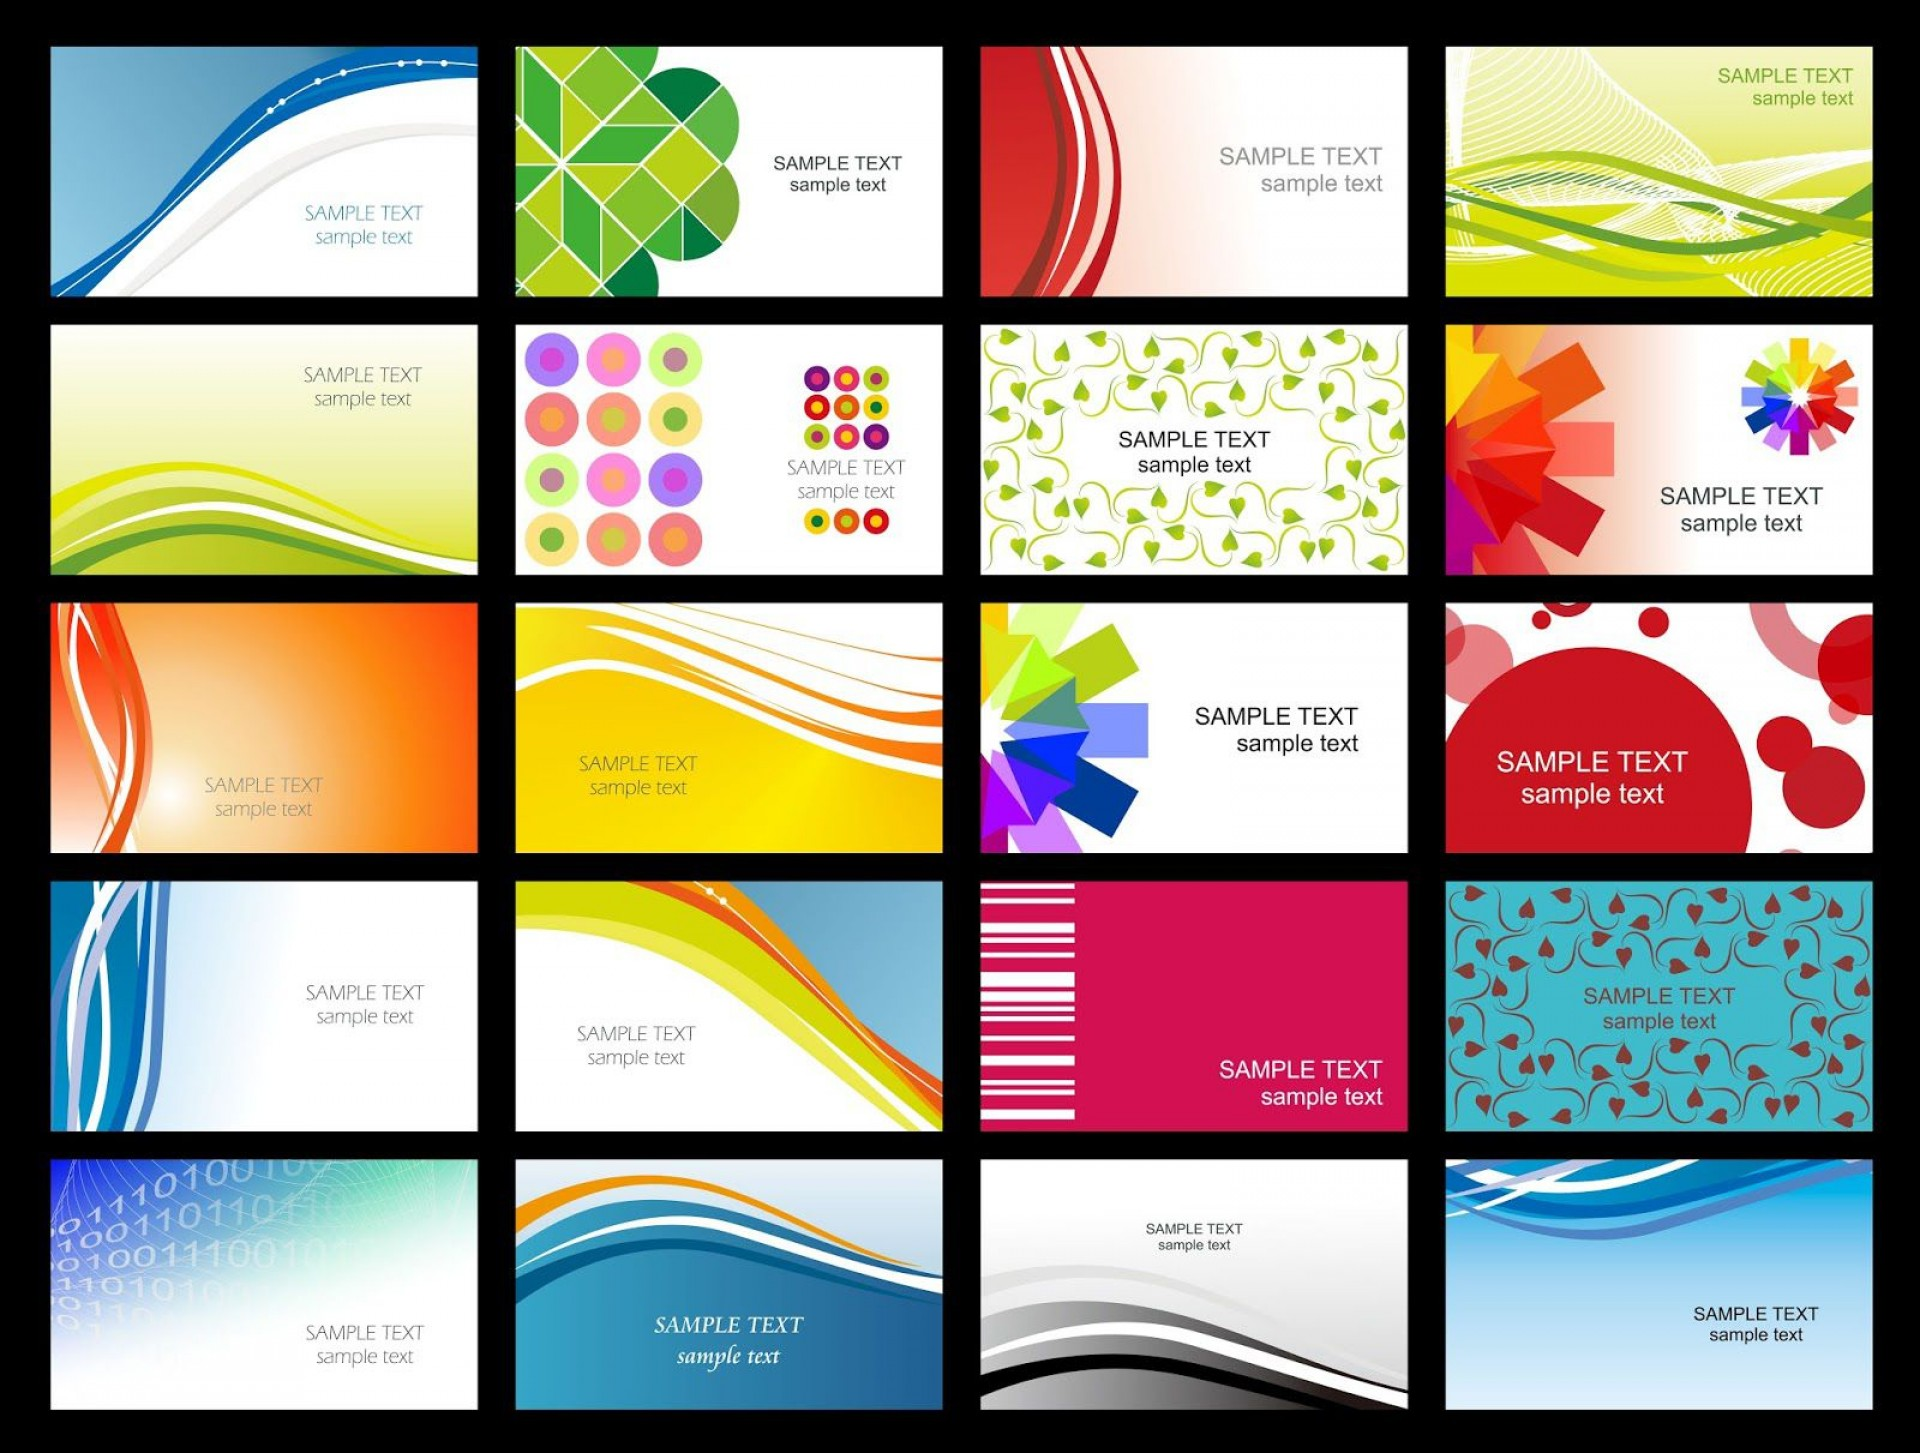 009 Marvelou Free Blank Busines Card Template Photoshop Photo  Download Psd1920